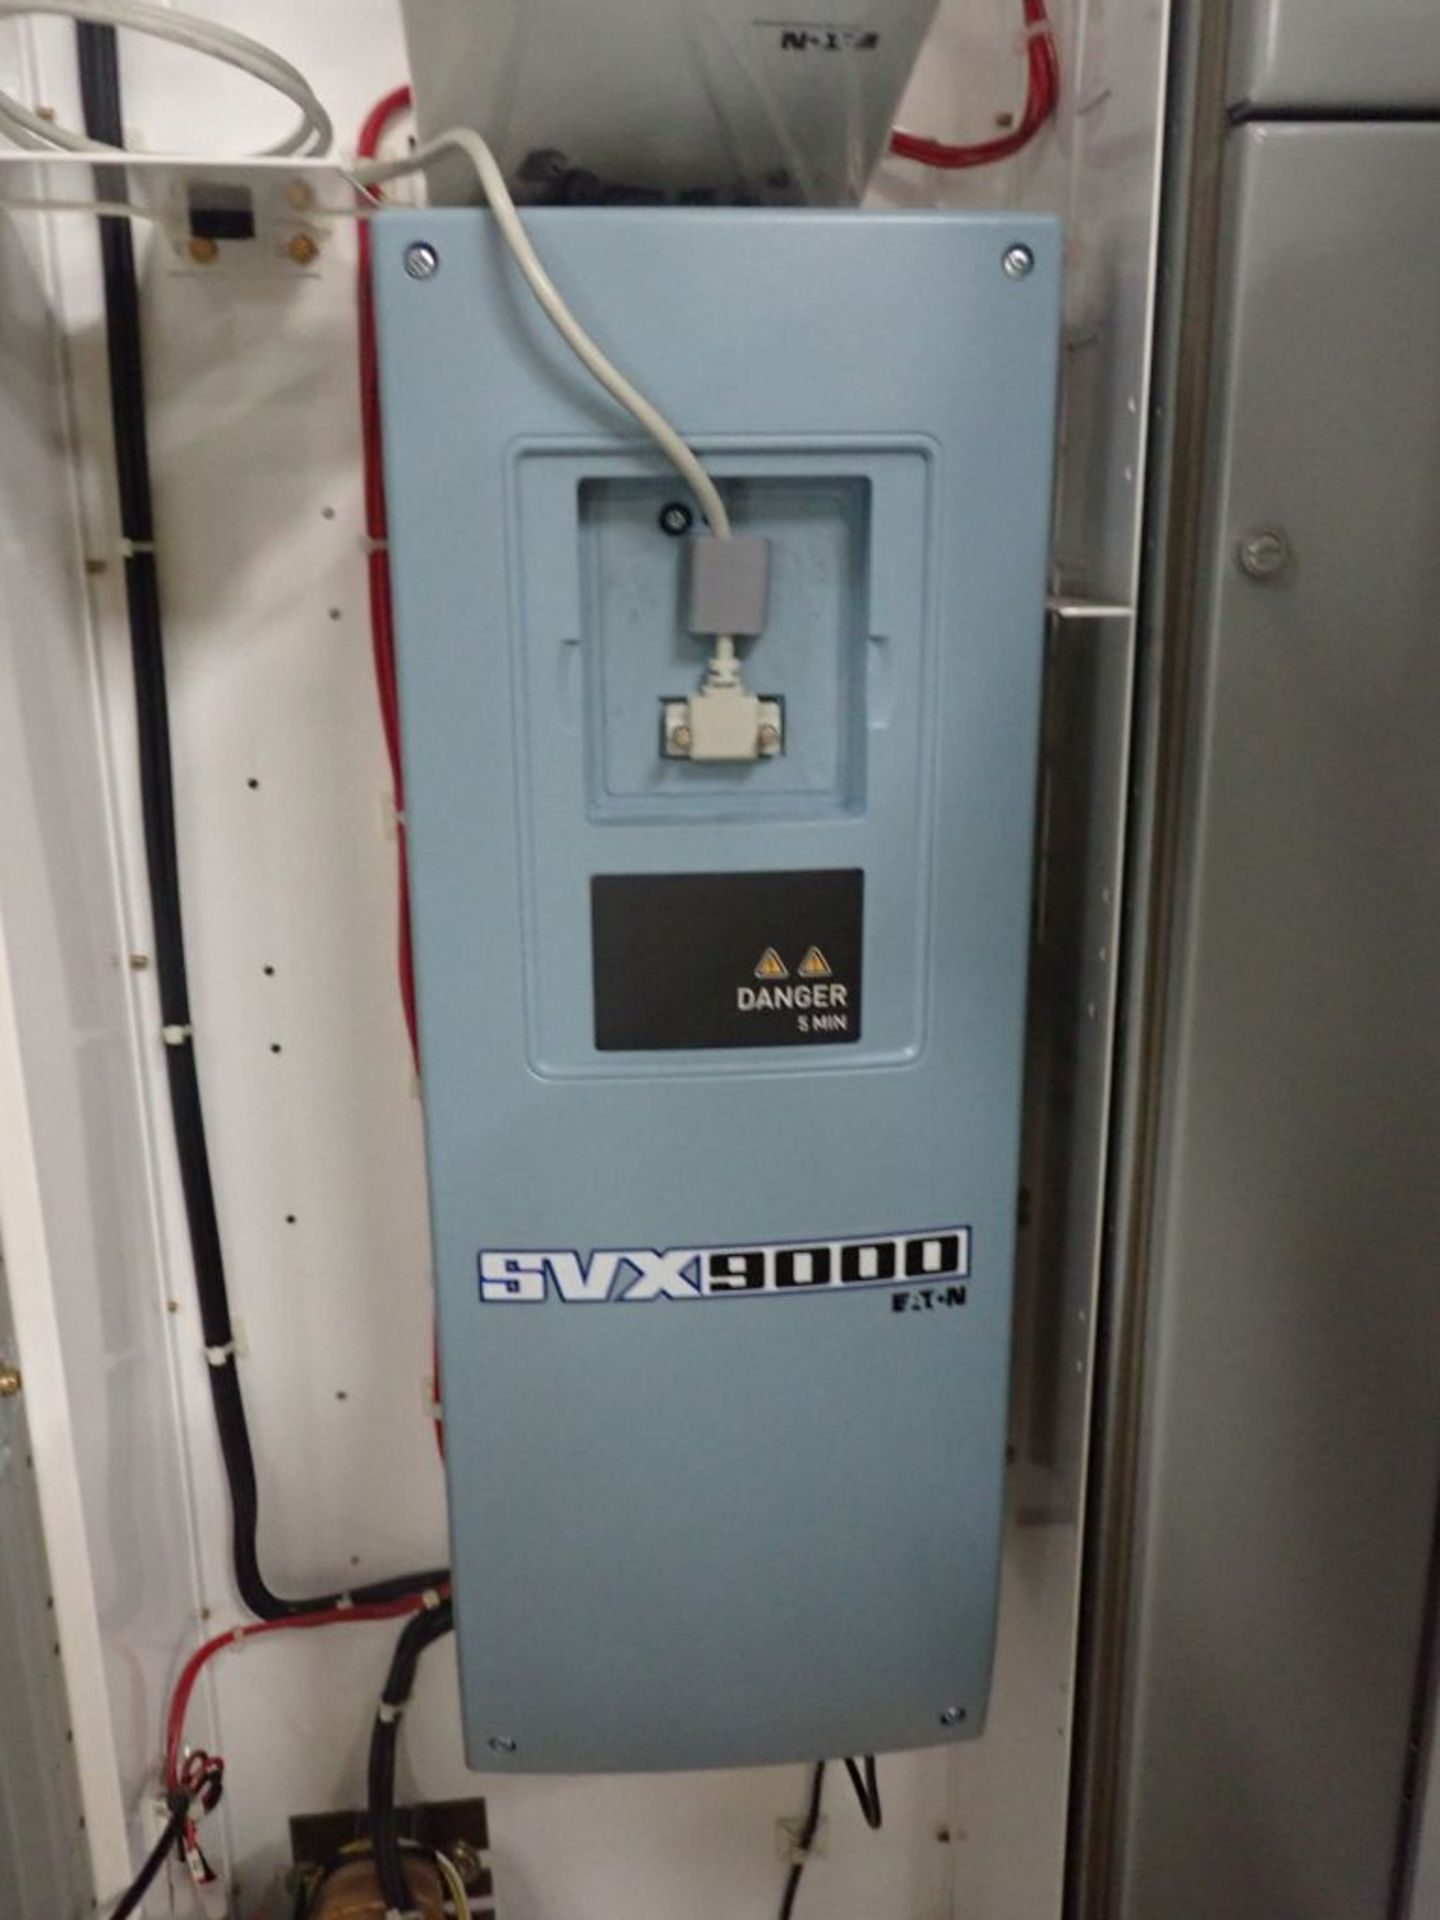 Eaton Freedom 2100 Series Motor Control Center   (2) F206-15A-10HP; (2) SVX900-50A, with Eaton AF - Image 22 of 48